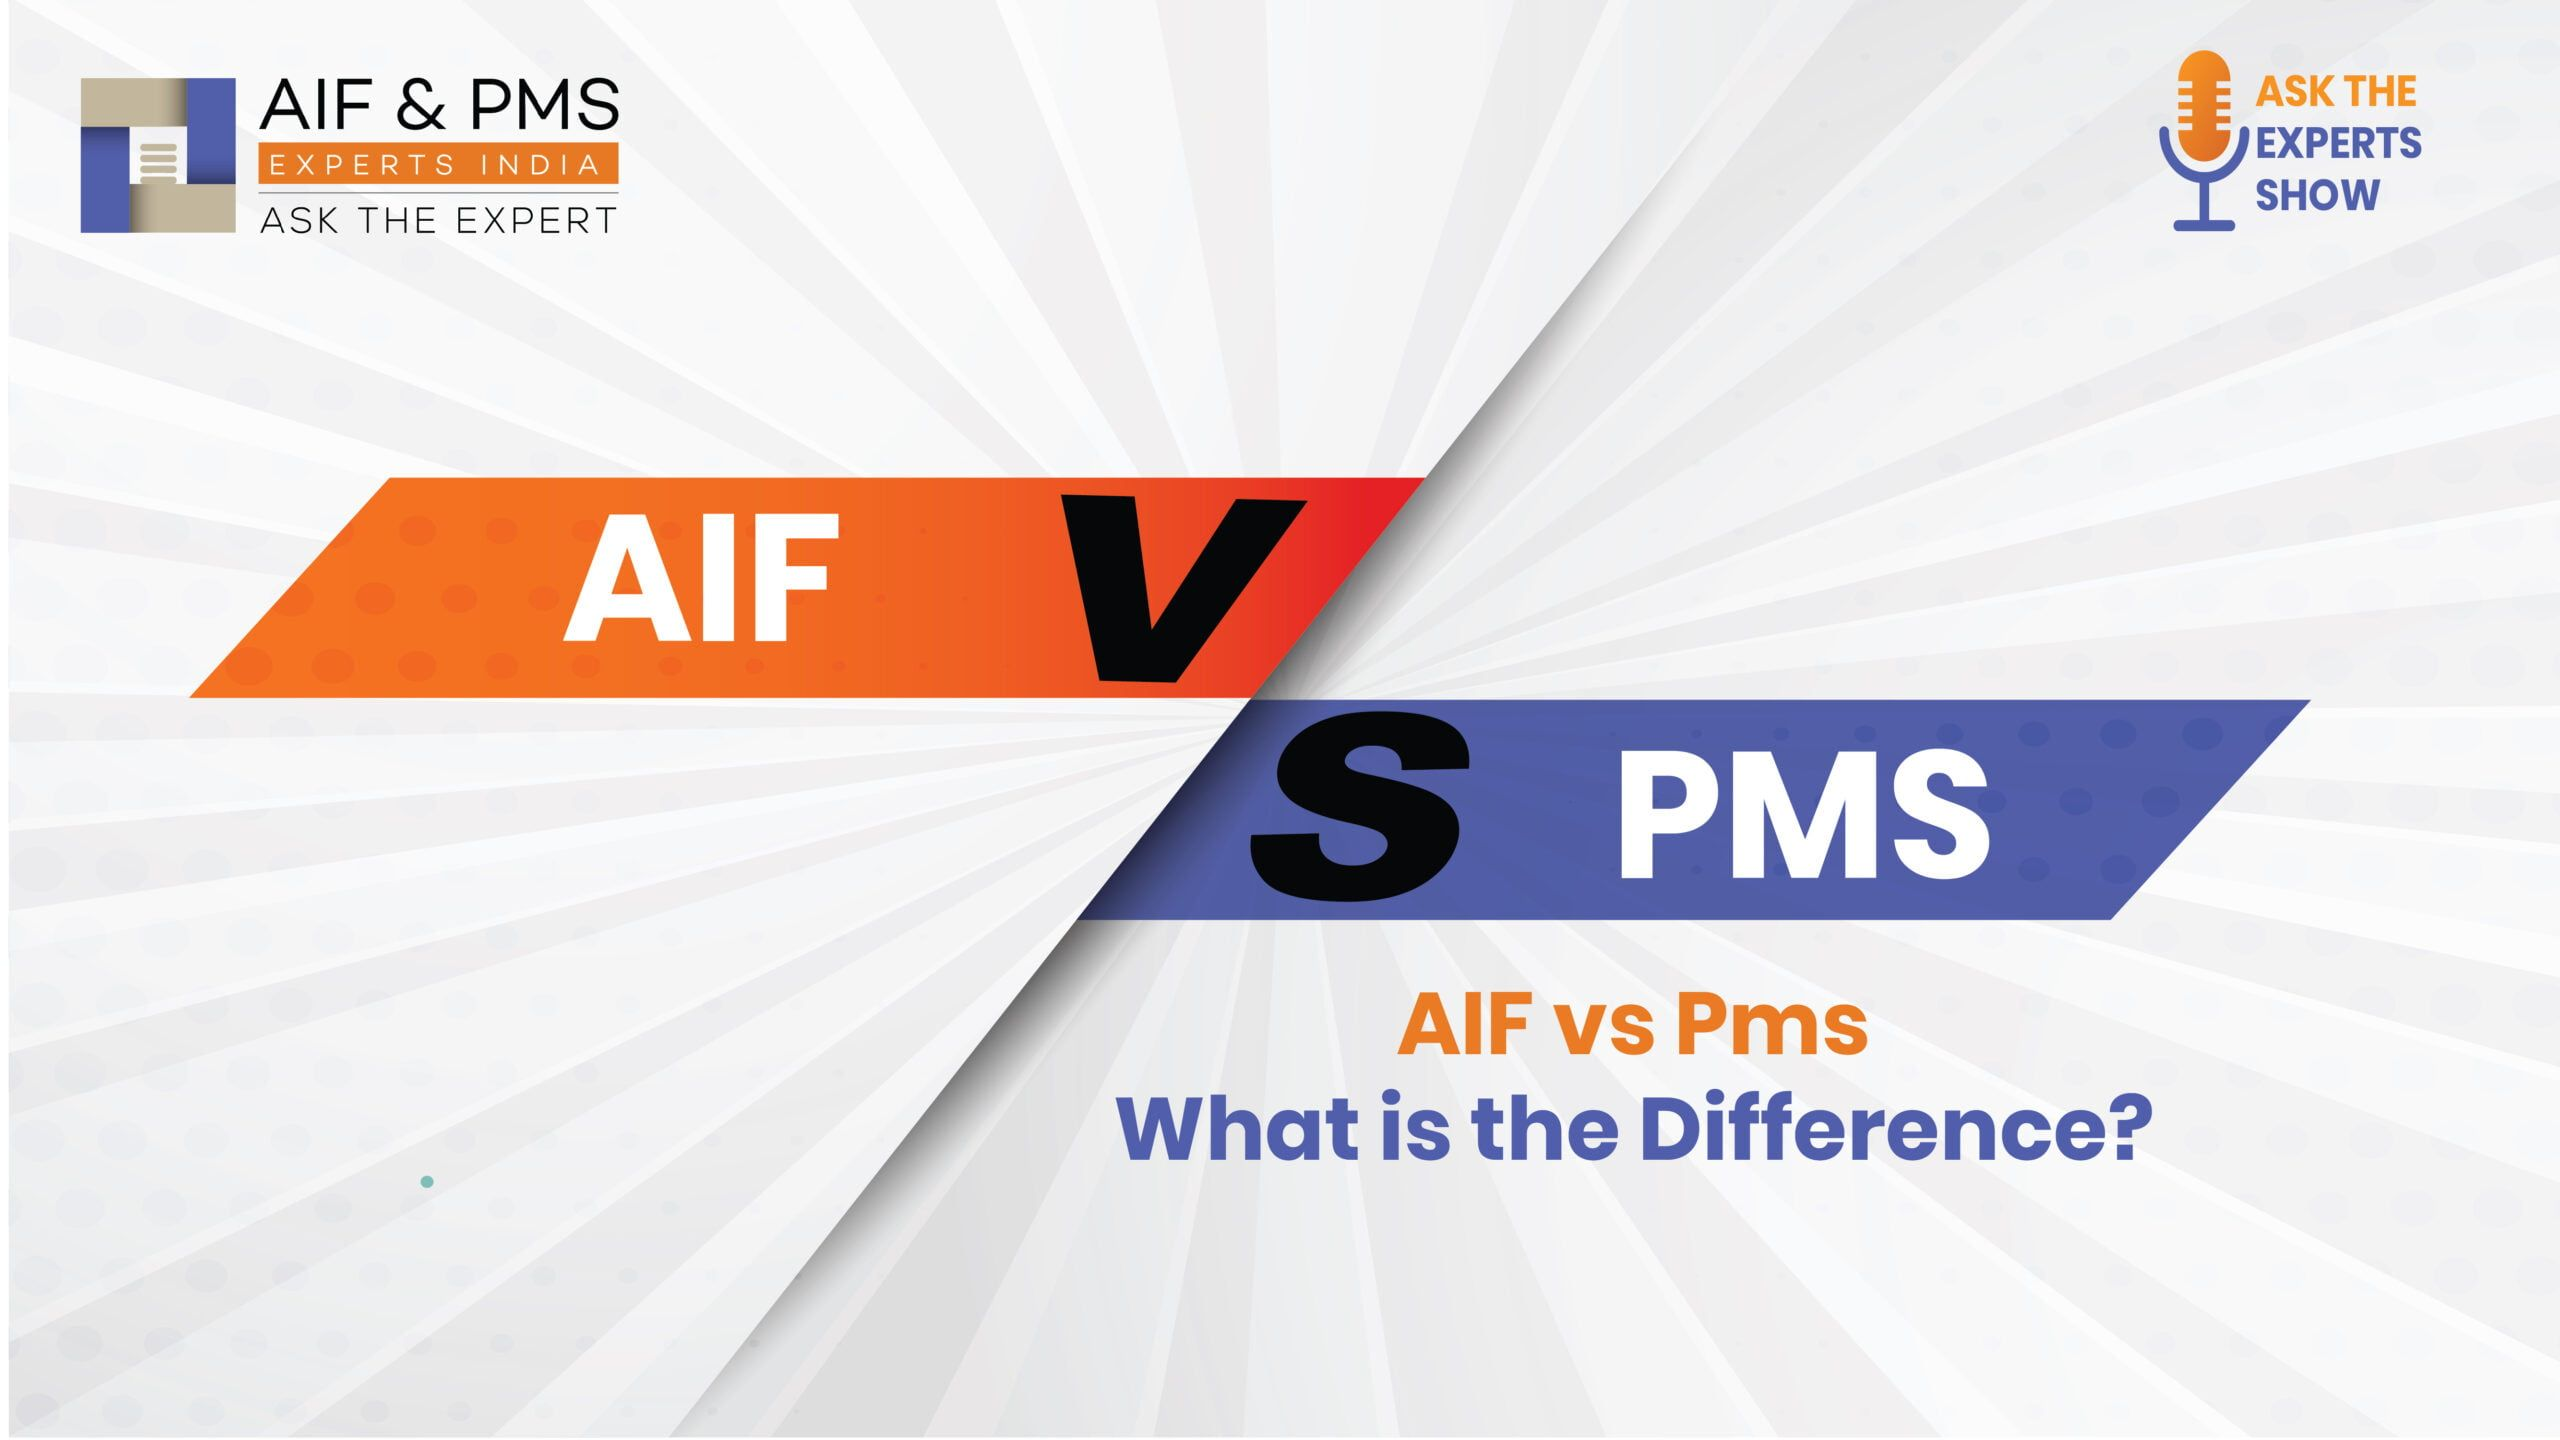 Aif vs Pms: What is the Difference? - Aif & Pms Experts India